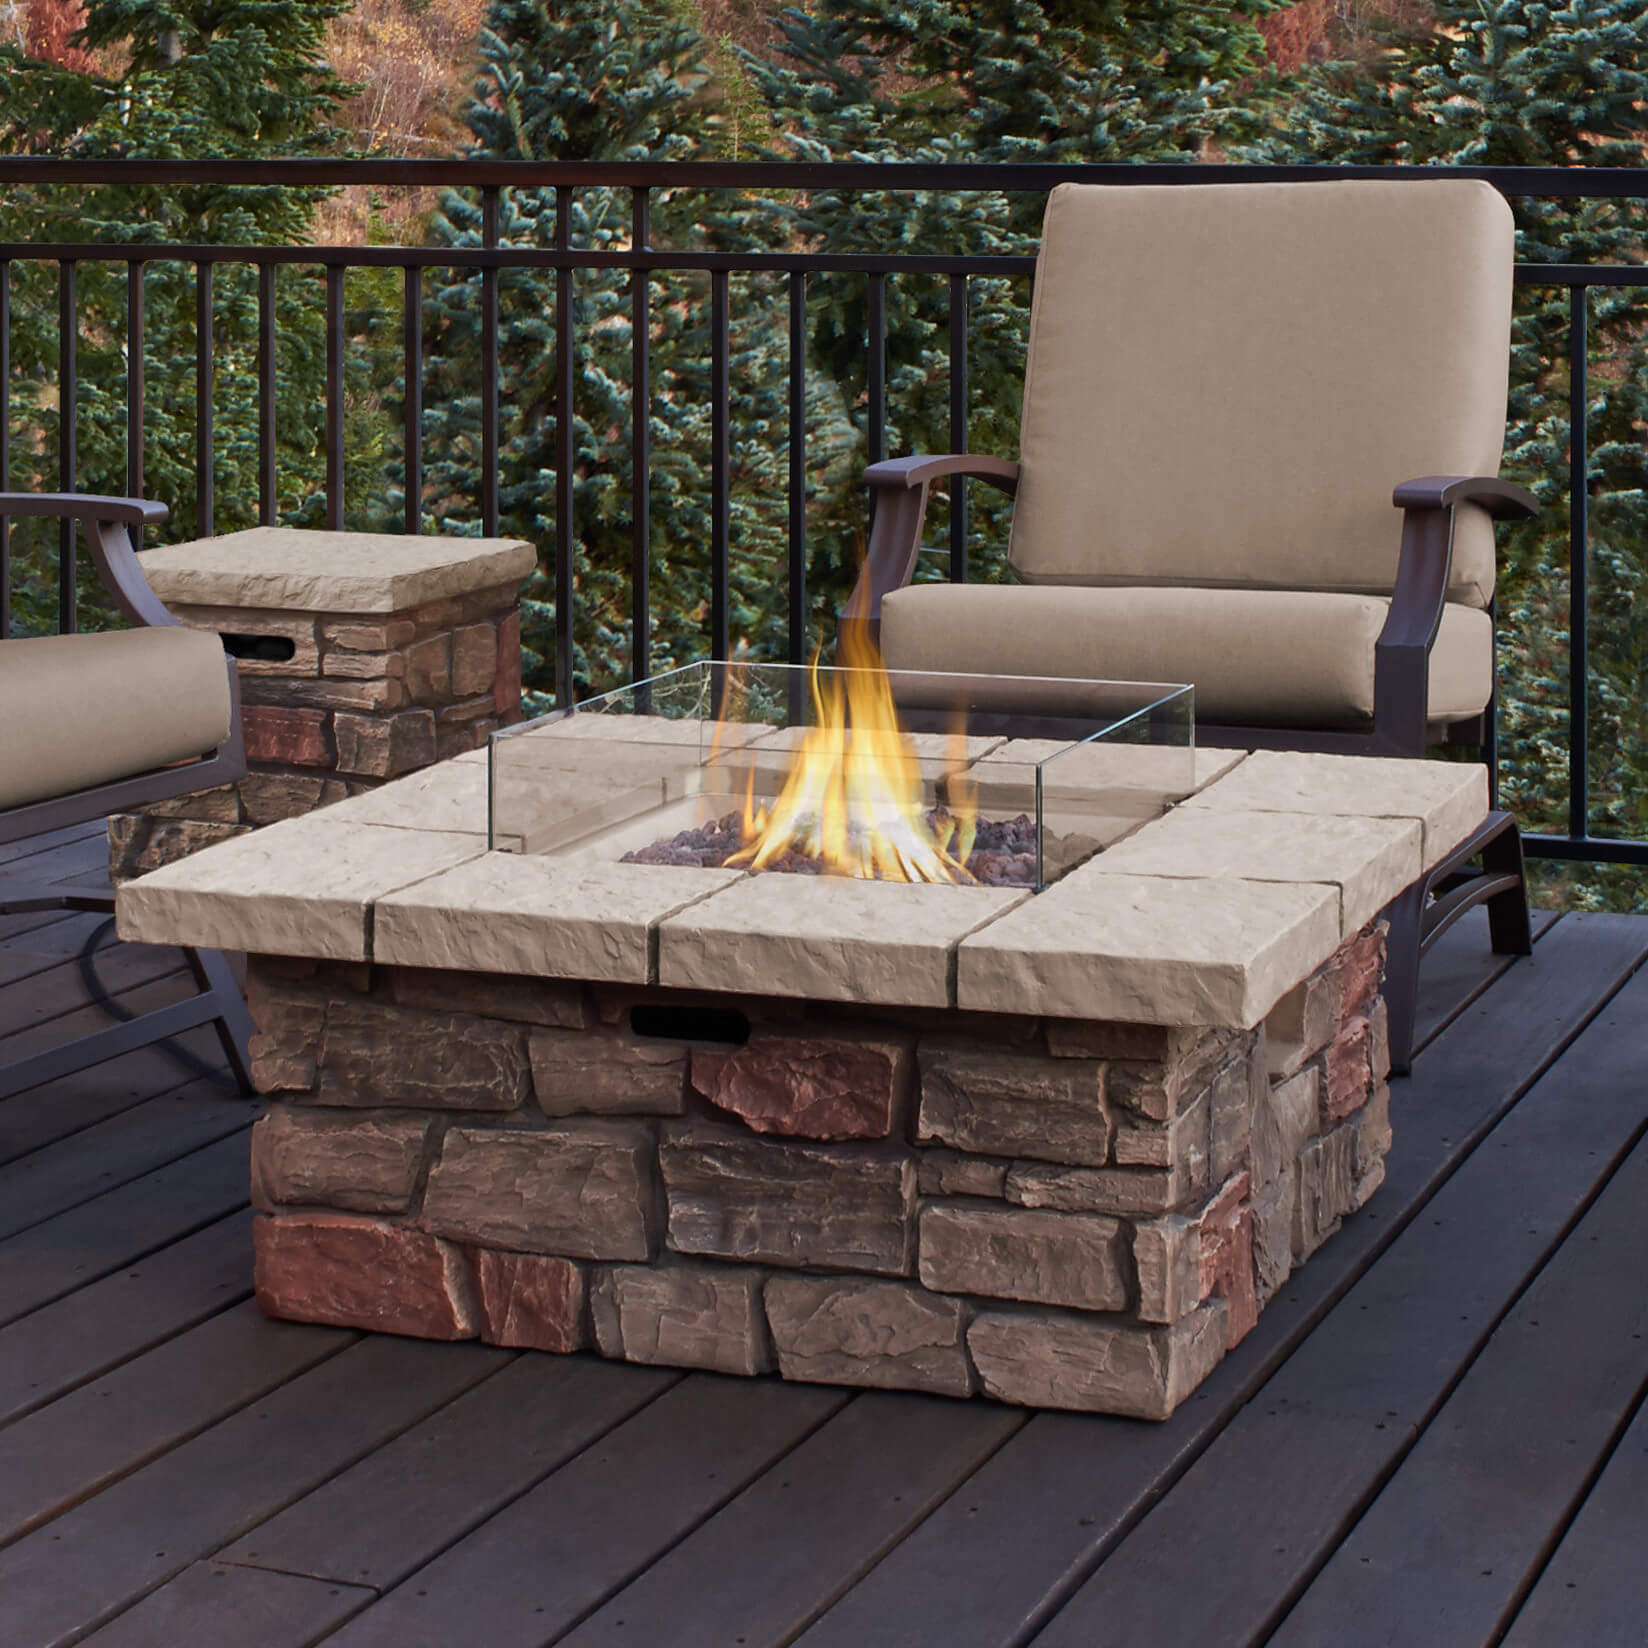 Top 15 Types Of Propane Patio Fire Pits With Table Buying Guide within dimensions 1648 X 1648